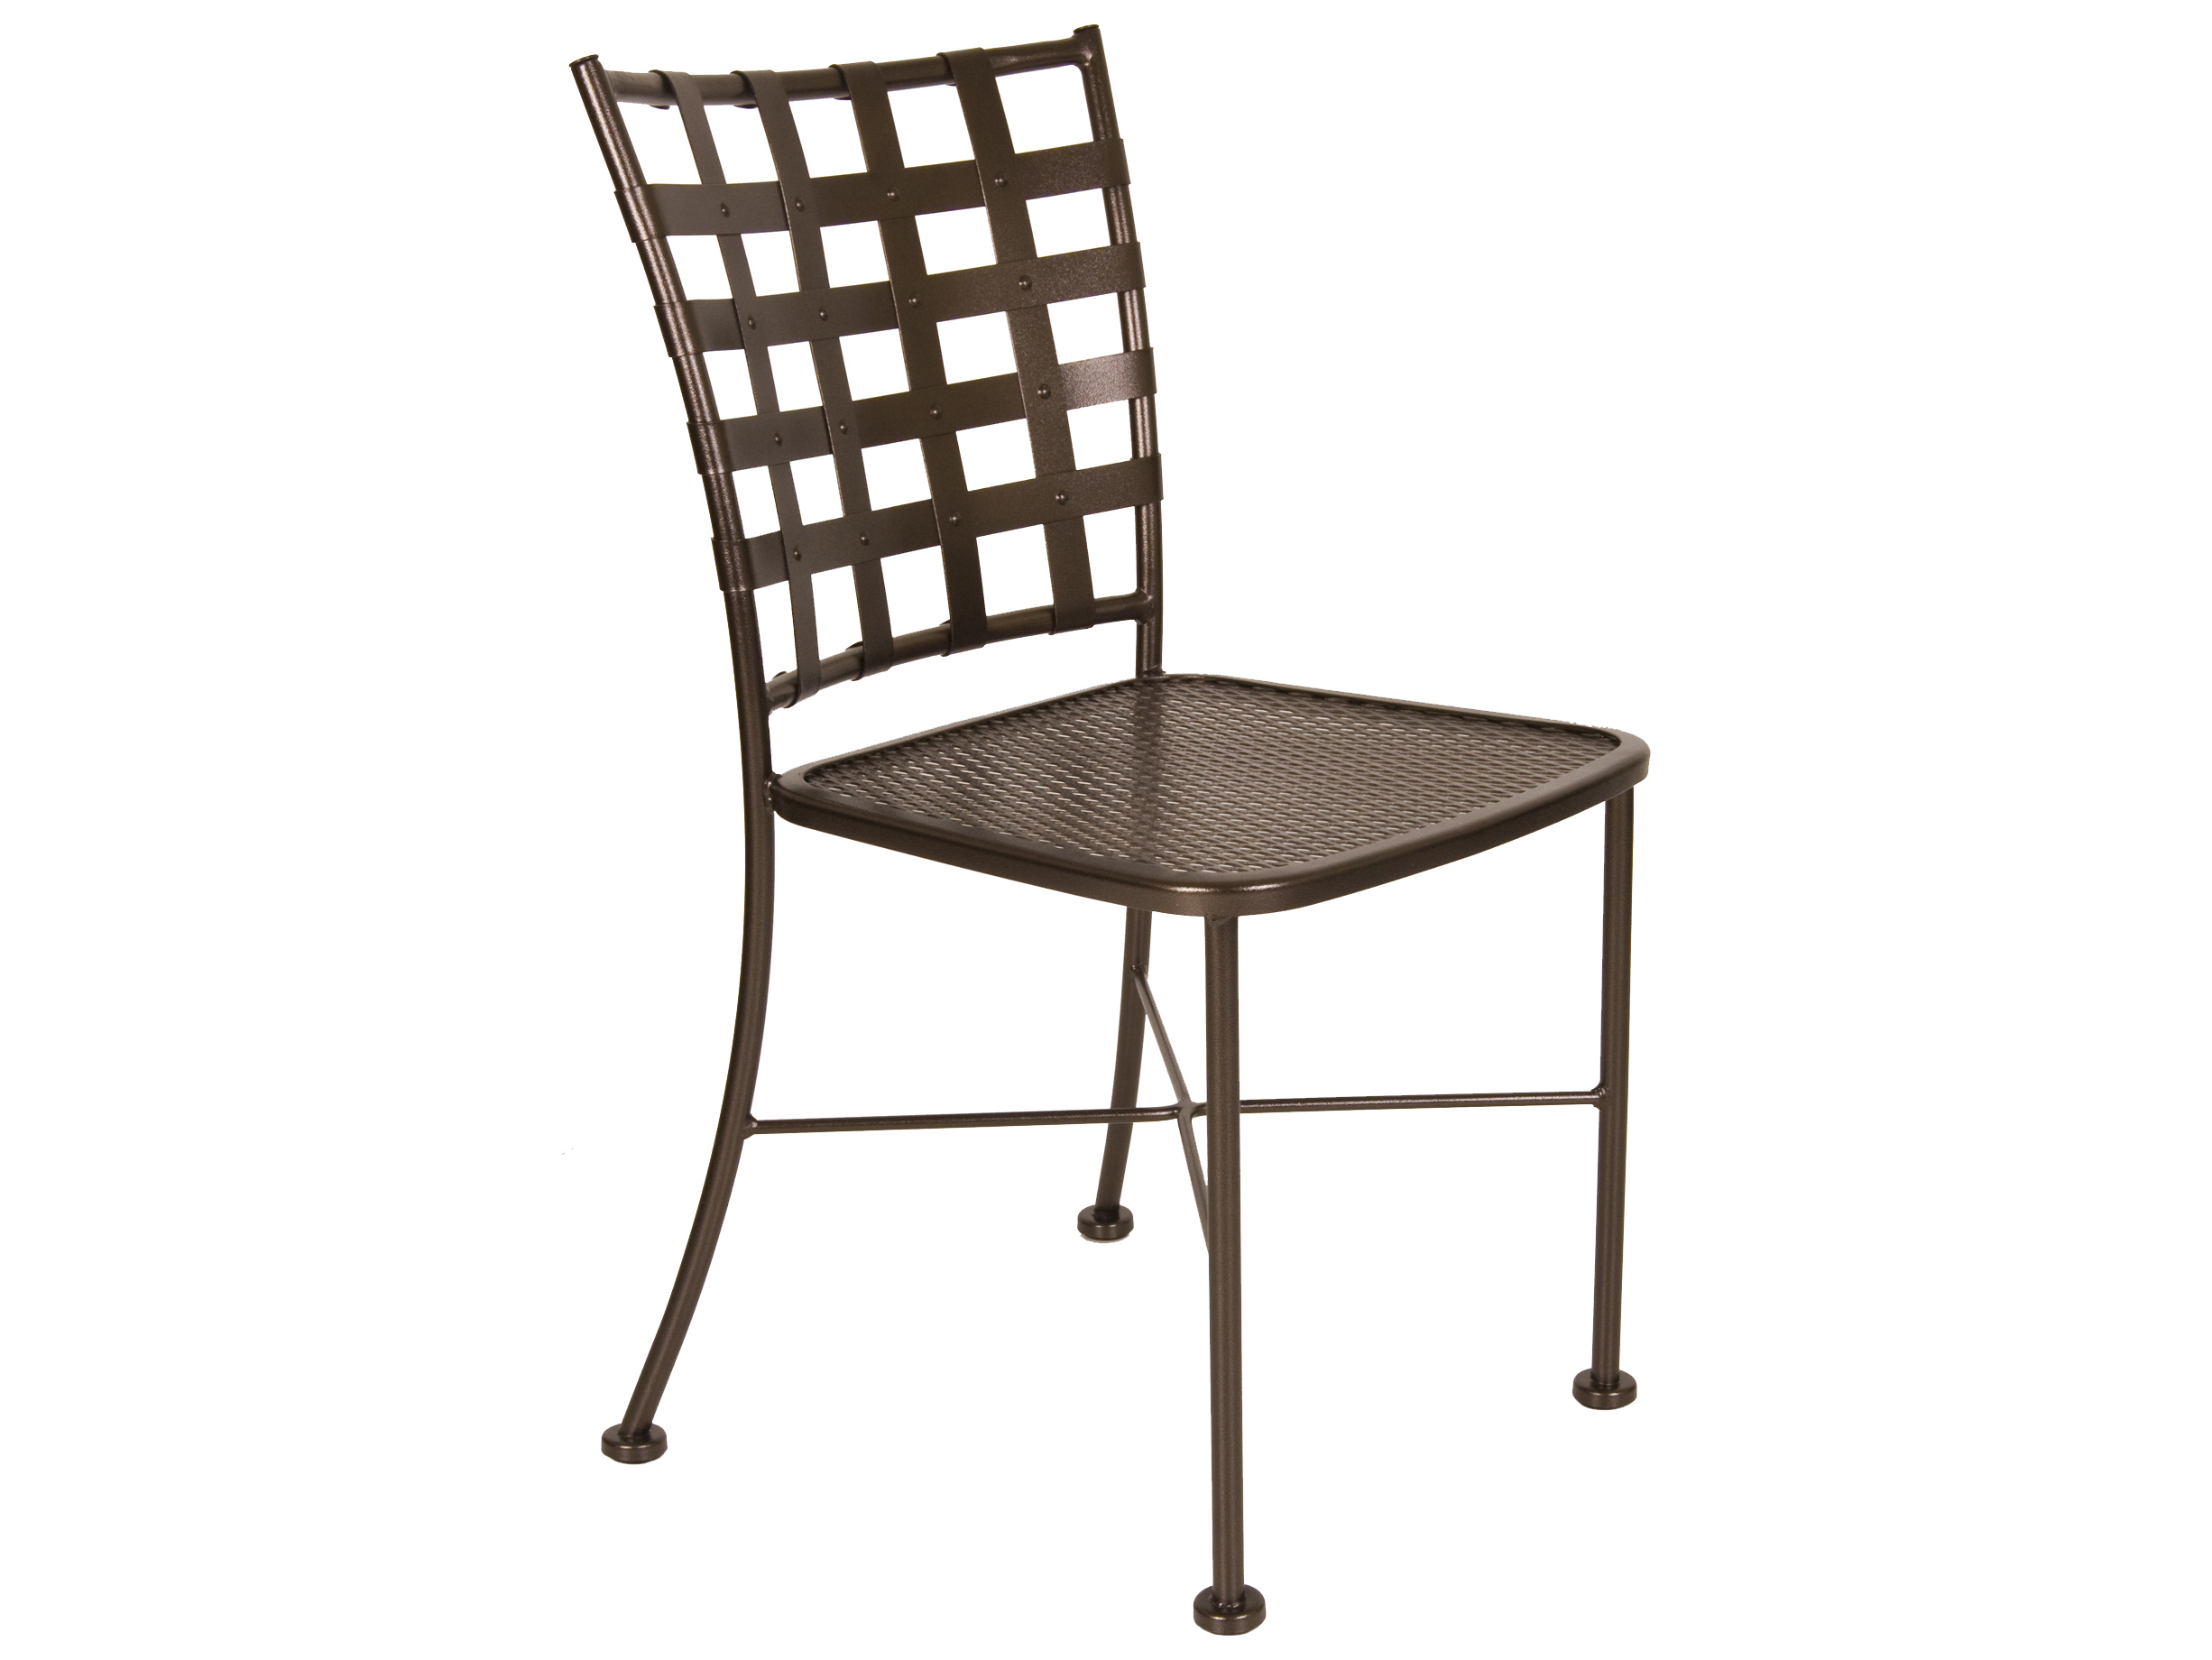 wrought iron dining chairs folding lounge beach chair ow lee casa 707 s